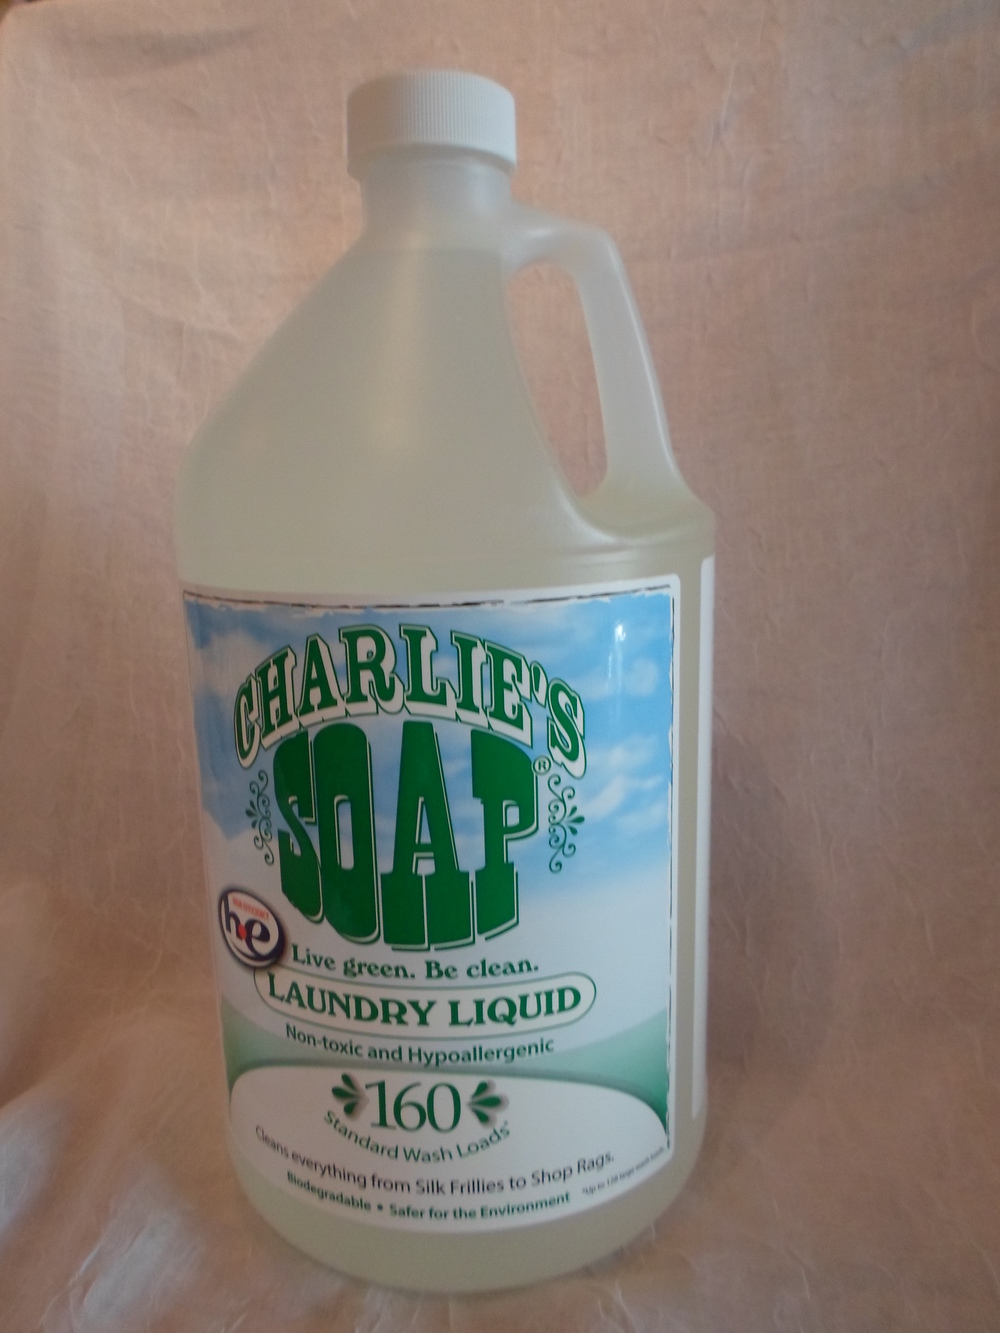 Charlie's Soap Laundry Detergent 1 gallon    $27.40    Wants 1